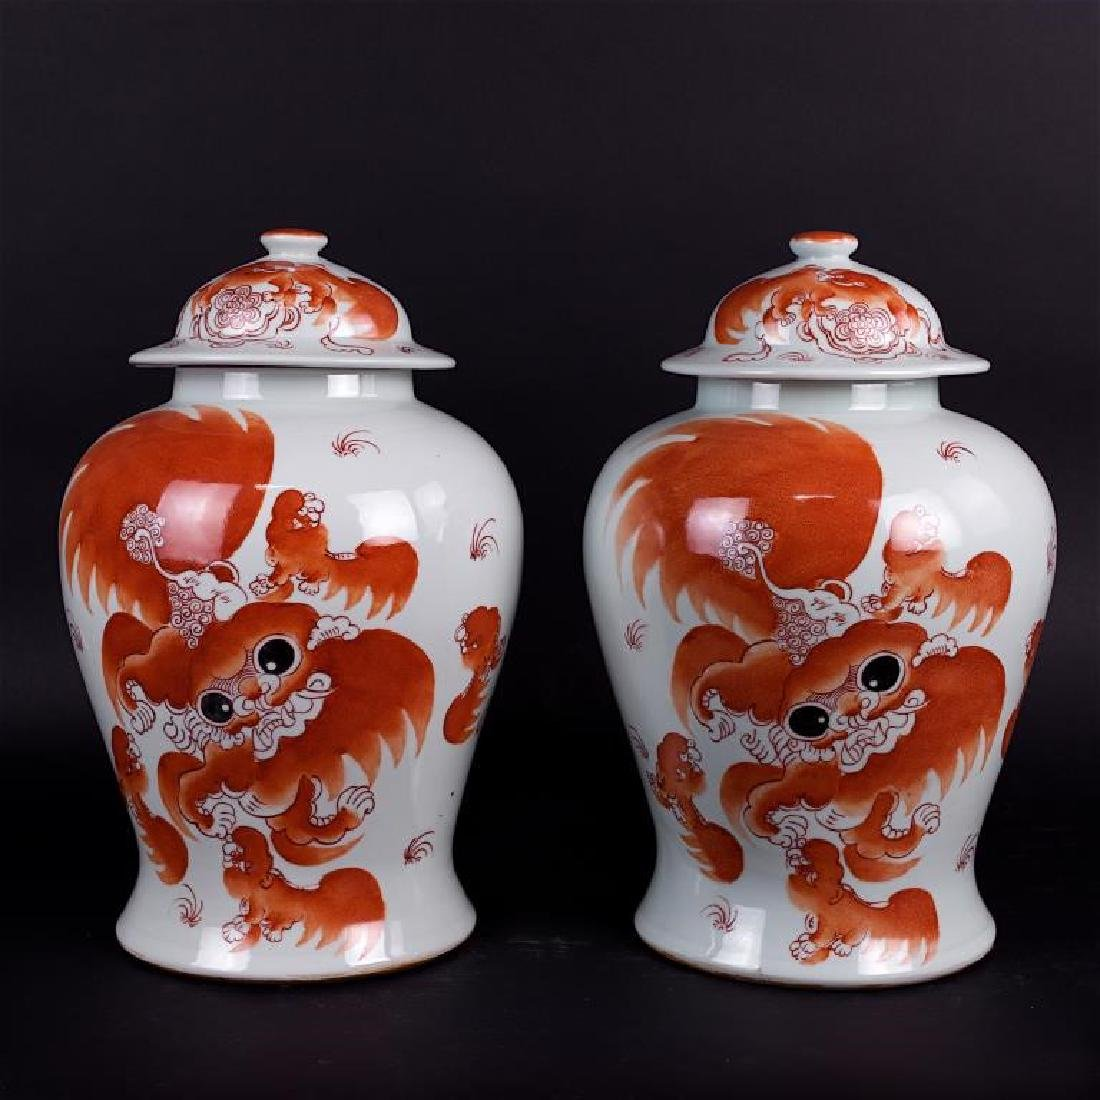 ANTIQUE PAIR OF IRON RED GINGER VASES WITH LID